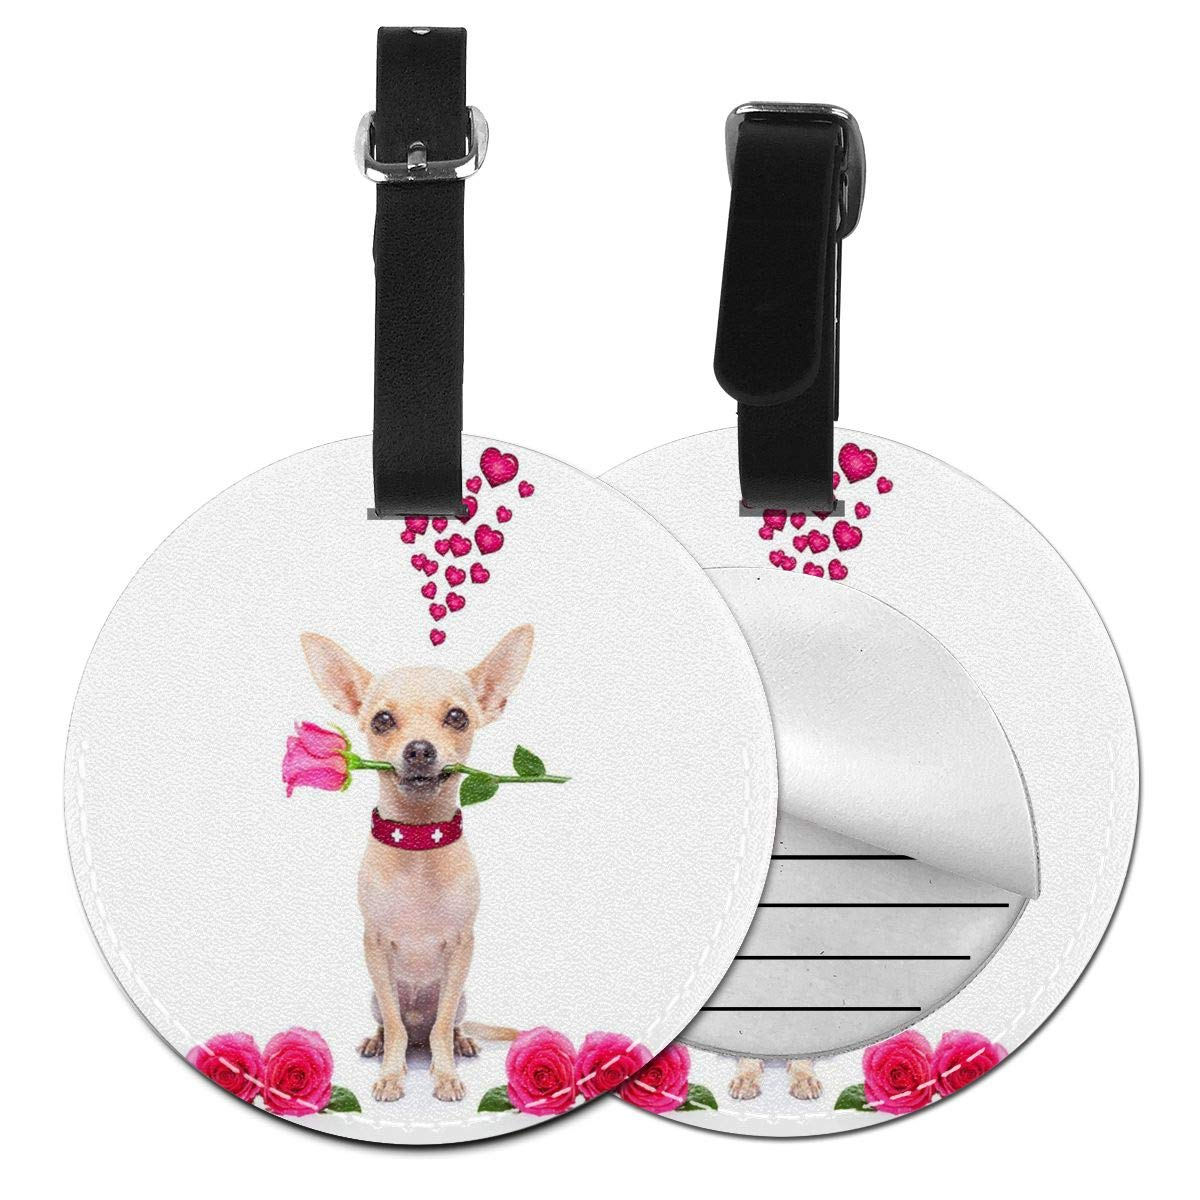 Fantastic Valentine Dog Luggage Baggage Travel Identifier ID Tags with Back Privacy Cover 4 Pack by Rachel Dora